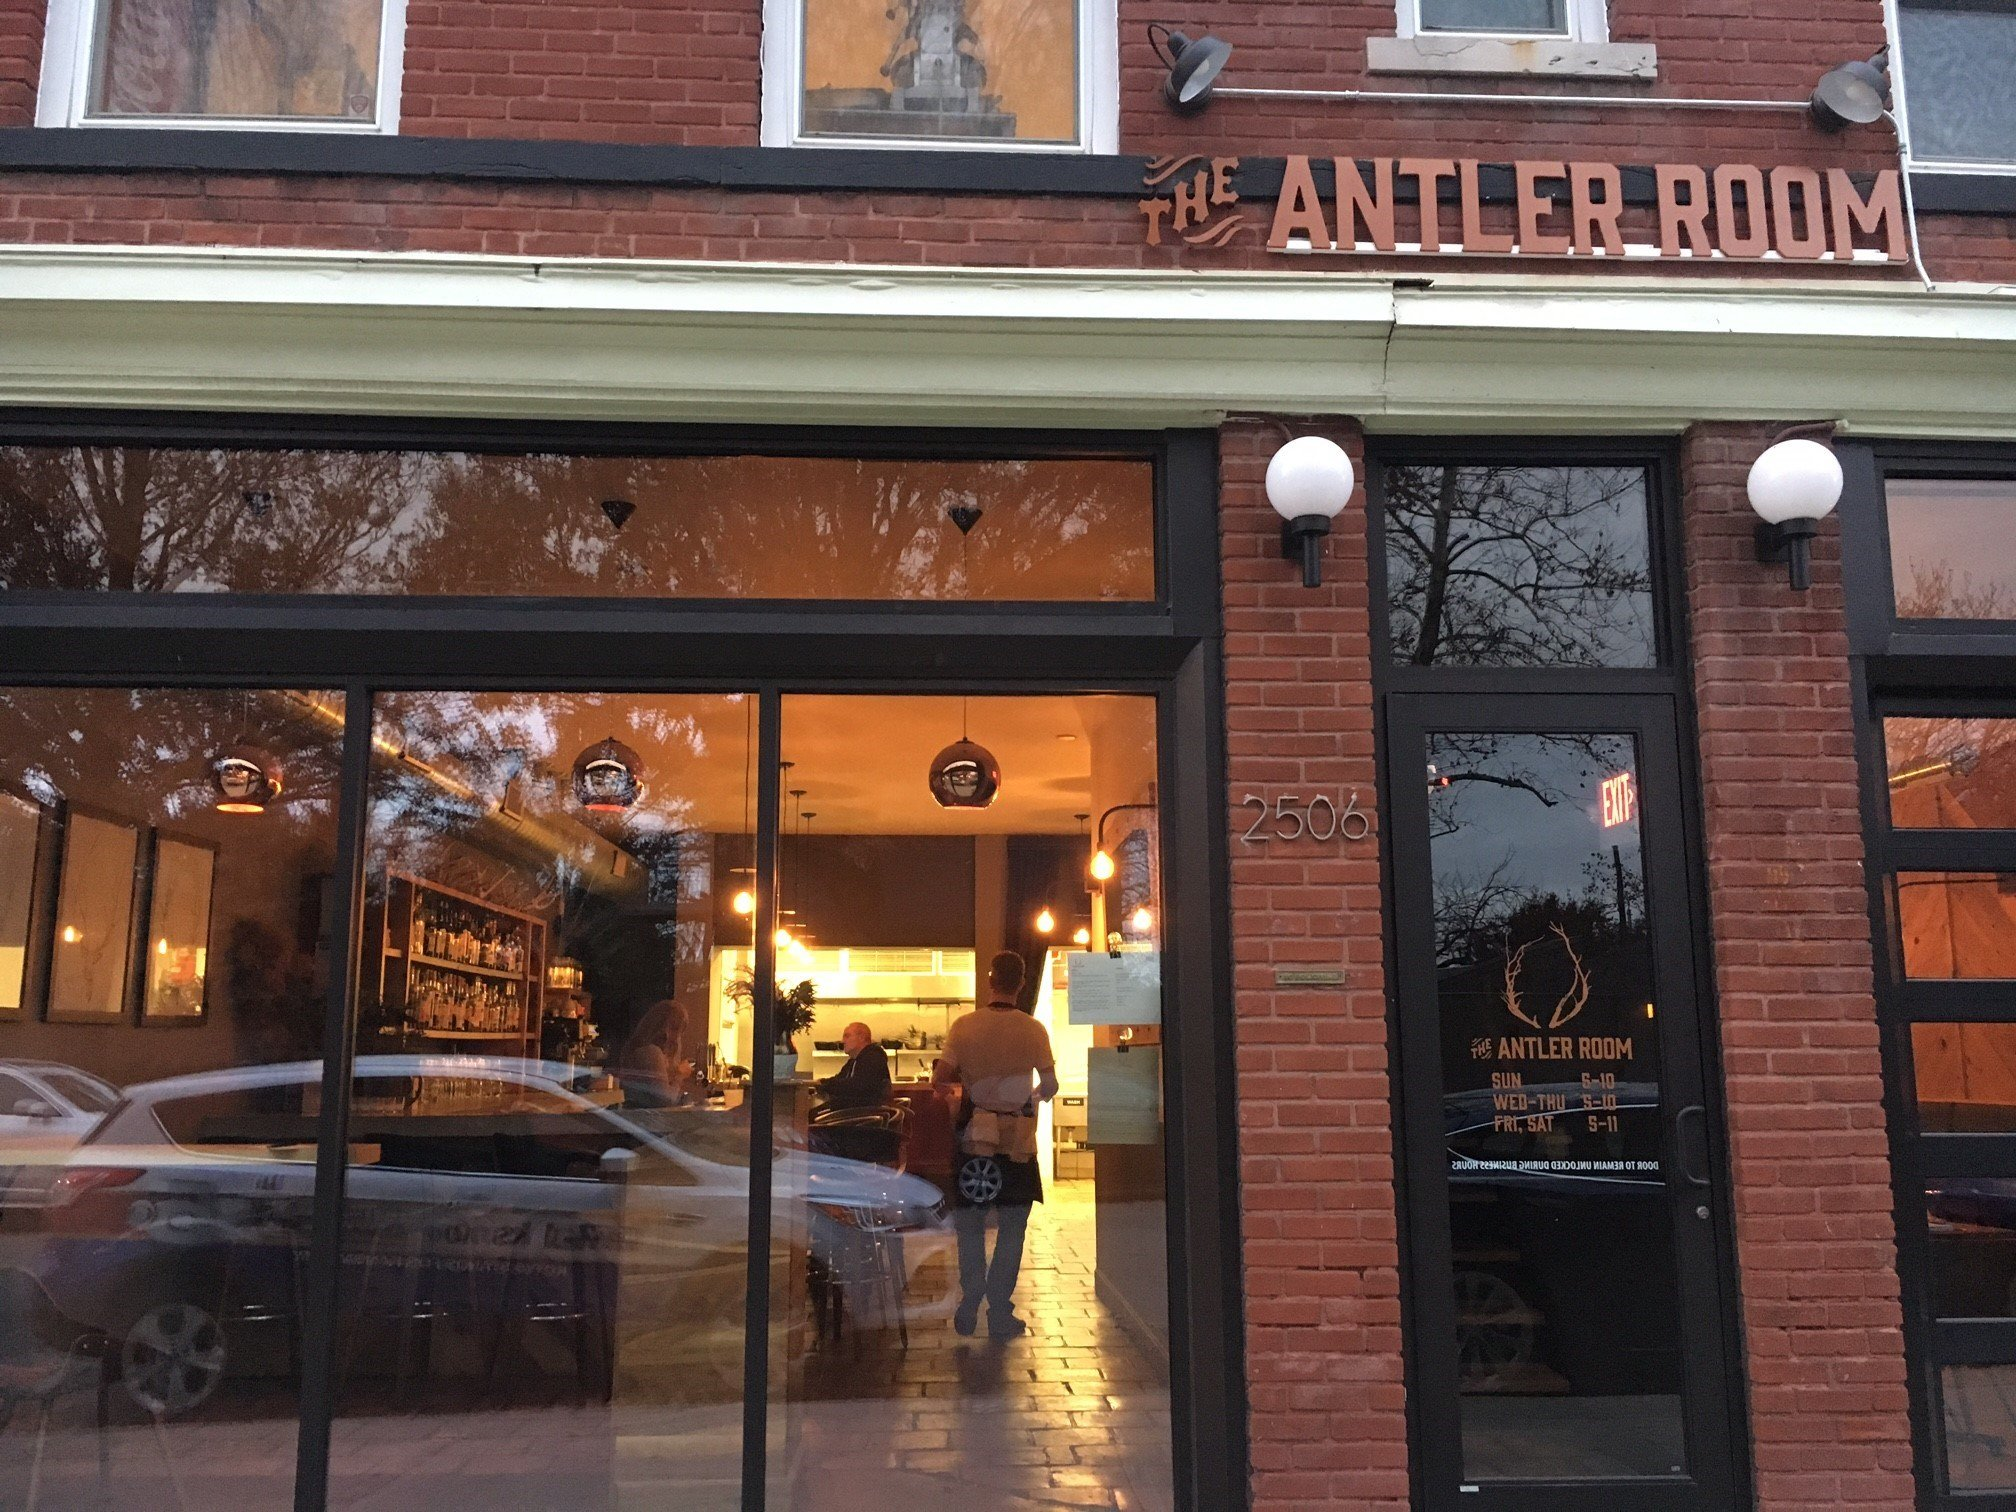 The Antler Room, located at 2506 Holmes St., was broken into about 4 a.m. Monday. (Ashley Arnold/KCTV5 News)